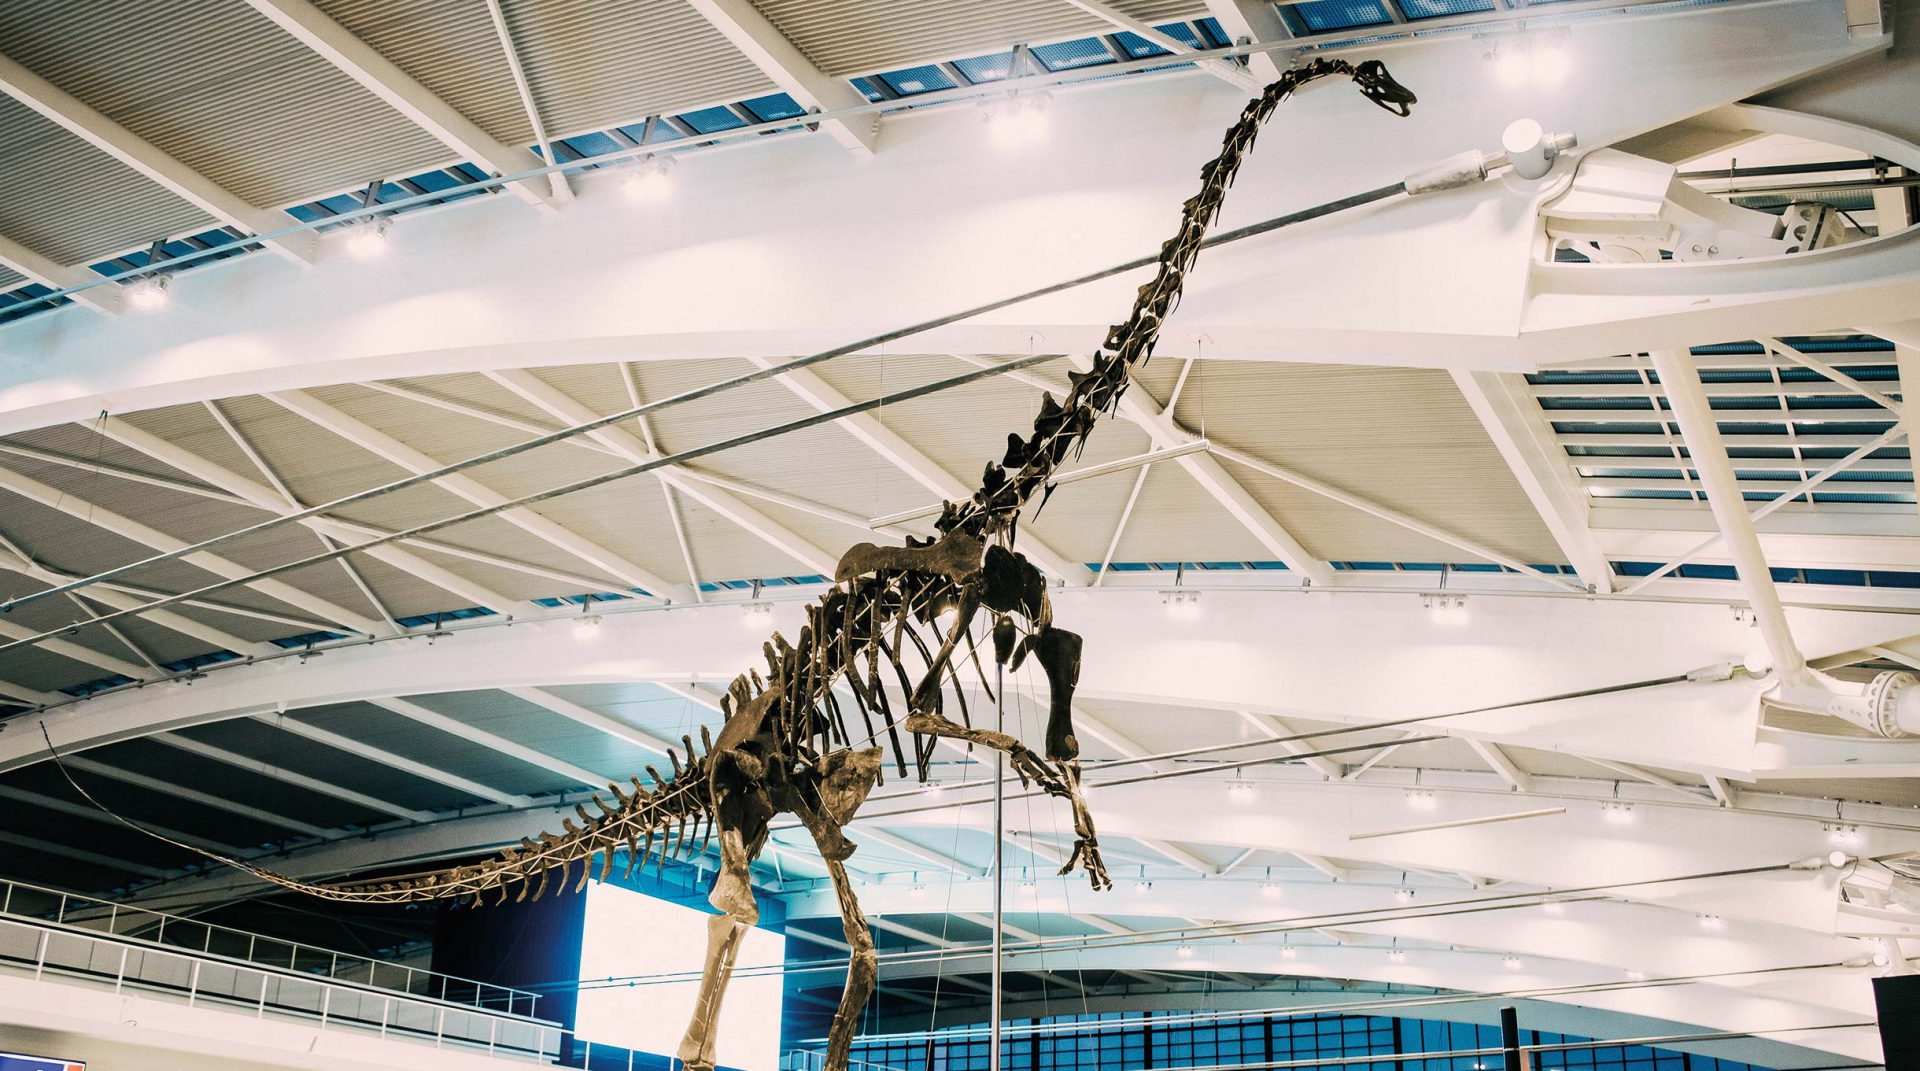 Skinny the Diplodocus at Heathrow Terminal 5